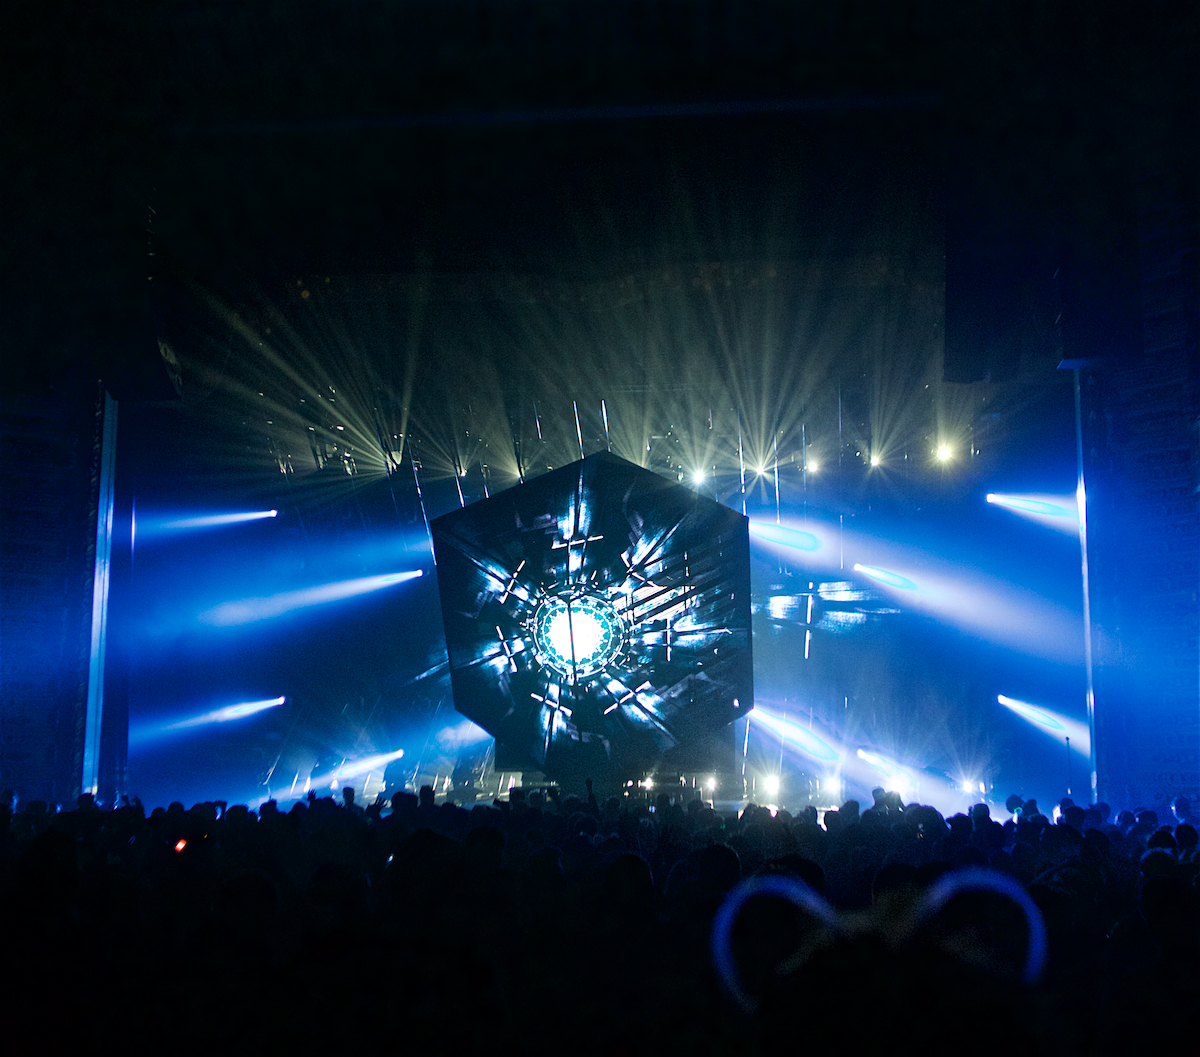 deadmau5 Cube v3 Tour with LIGHTS The Met Philadelphia, Pa January 23, 2020  DerekBrad.com